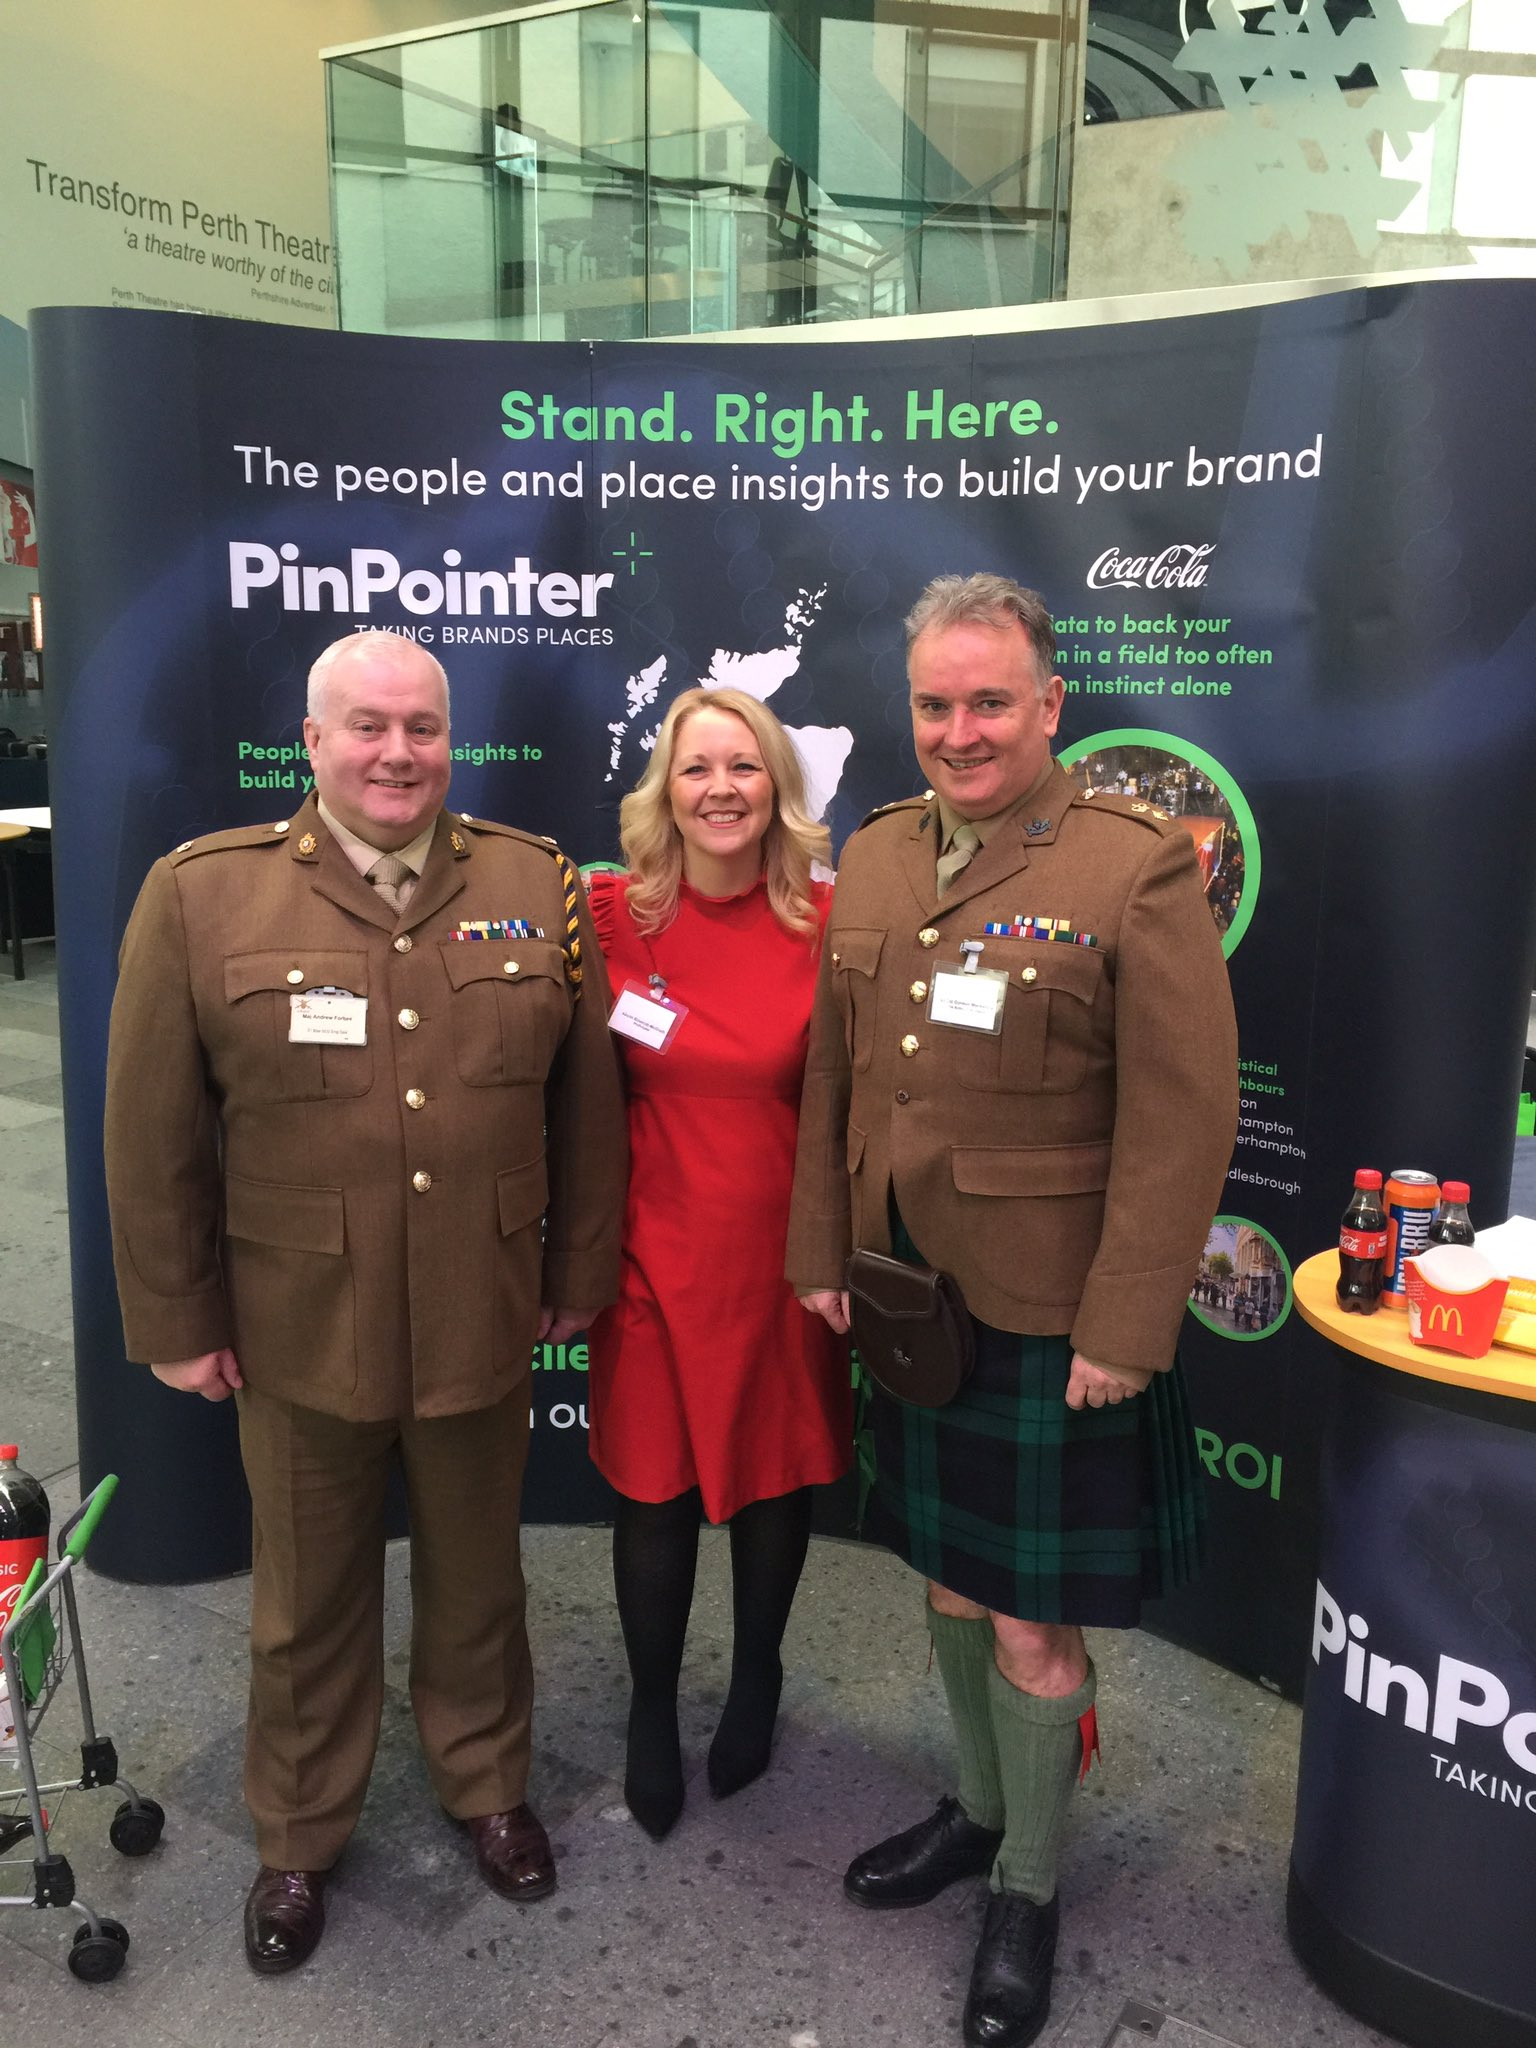 @PinPointerUK excited to be here @bidscotland gathering 2017. Come over and say hi! Kilts are welcome! https://t.co/ZbtrZPsT3k